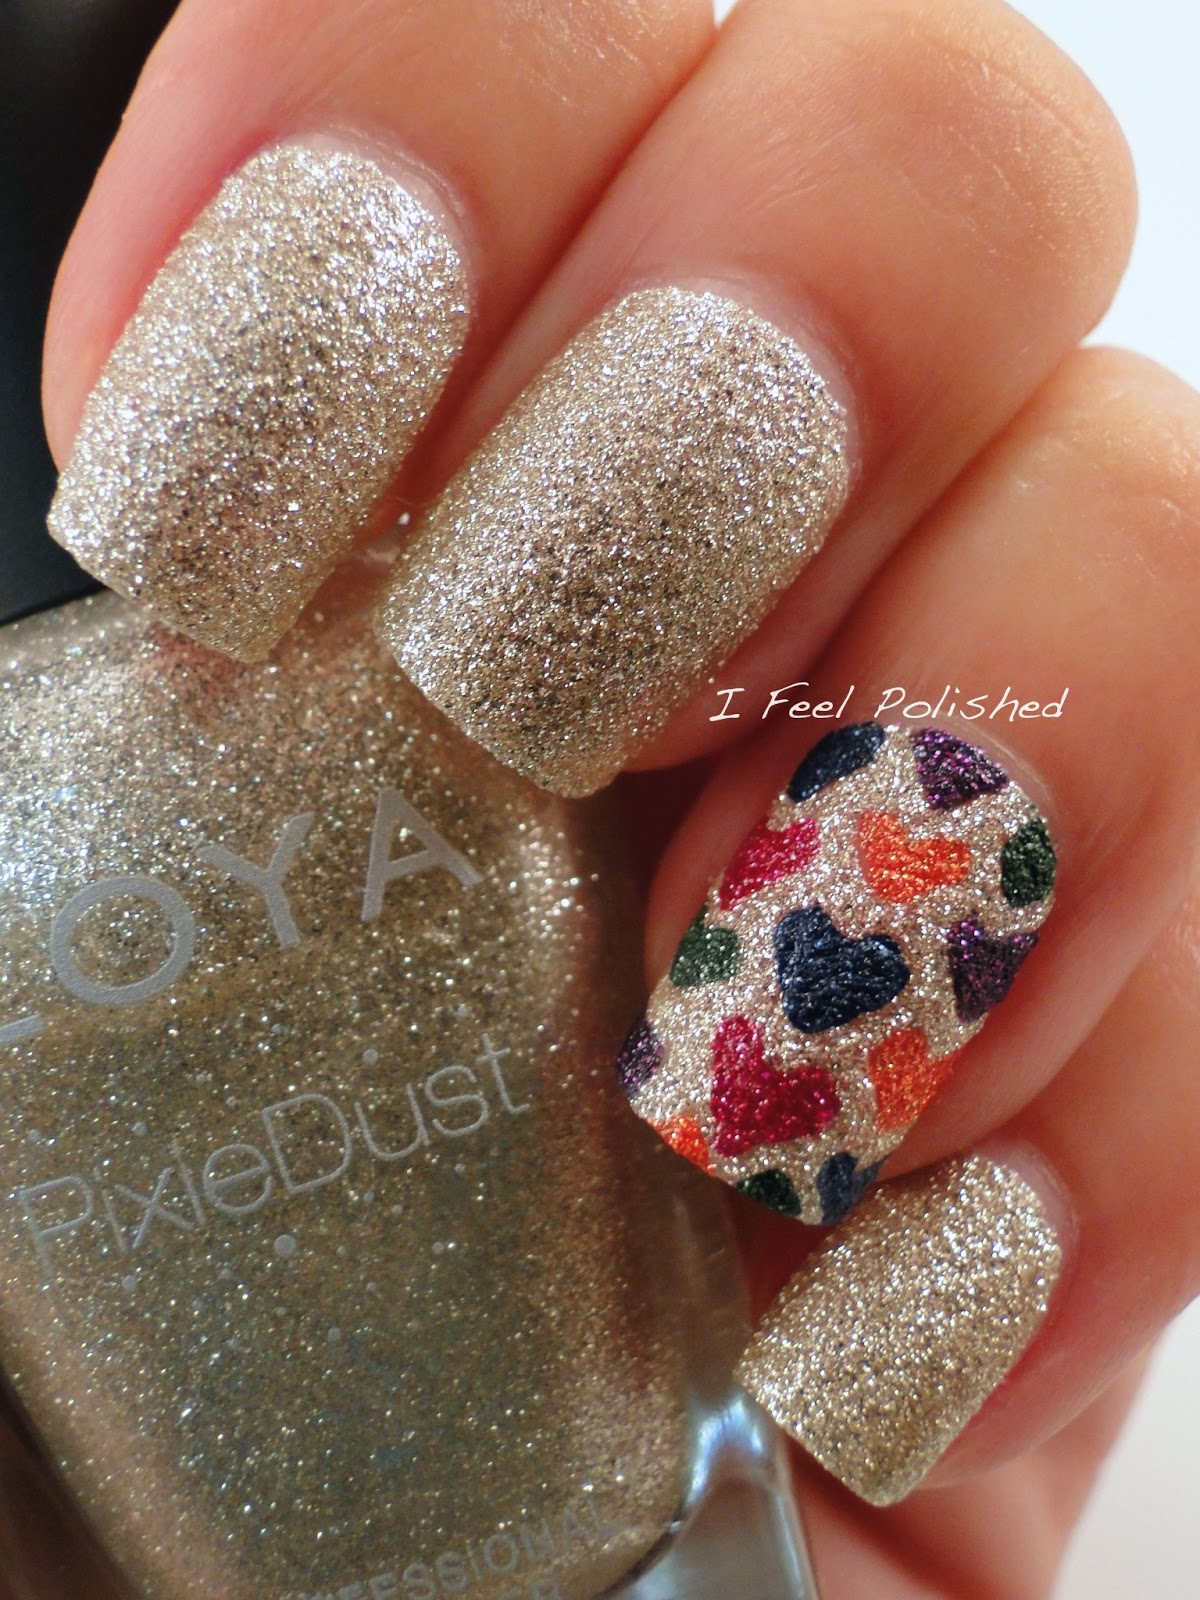 I Feel Polished!: Pixie Dust Nail Art